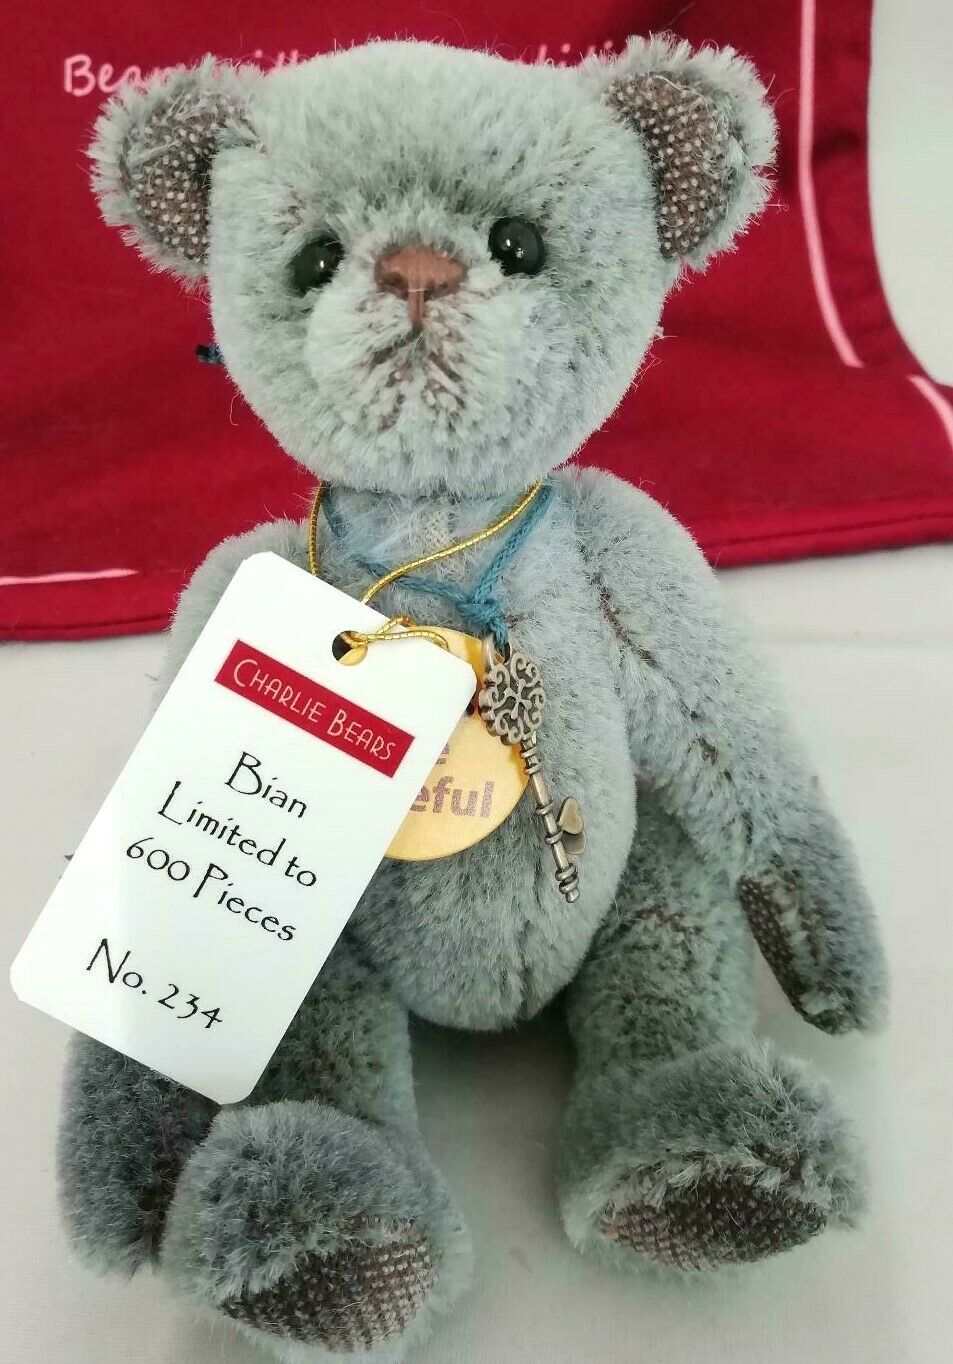 2019 Charlie Bears Minimo Mohair BIAN It's All In The Name Series LE 234 600